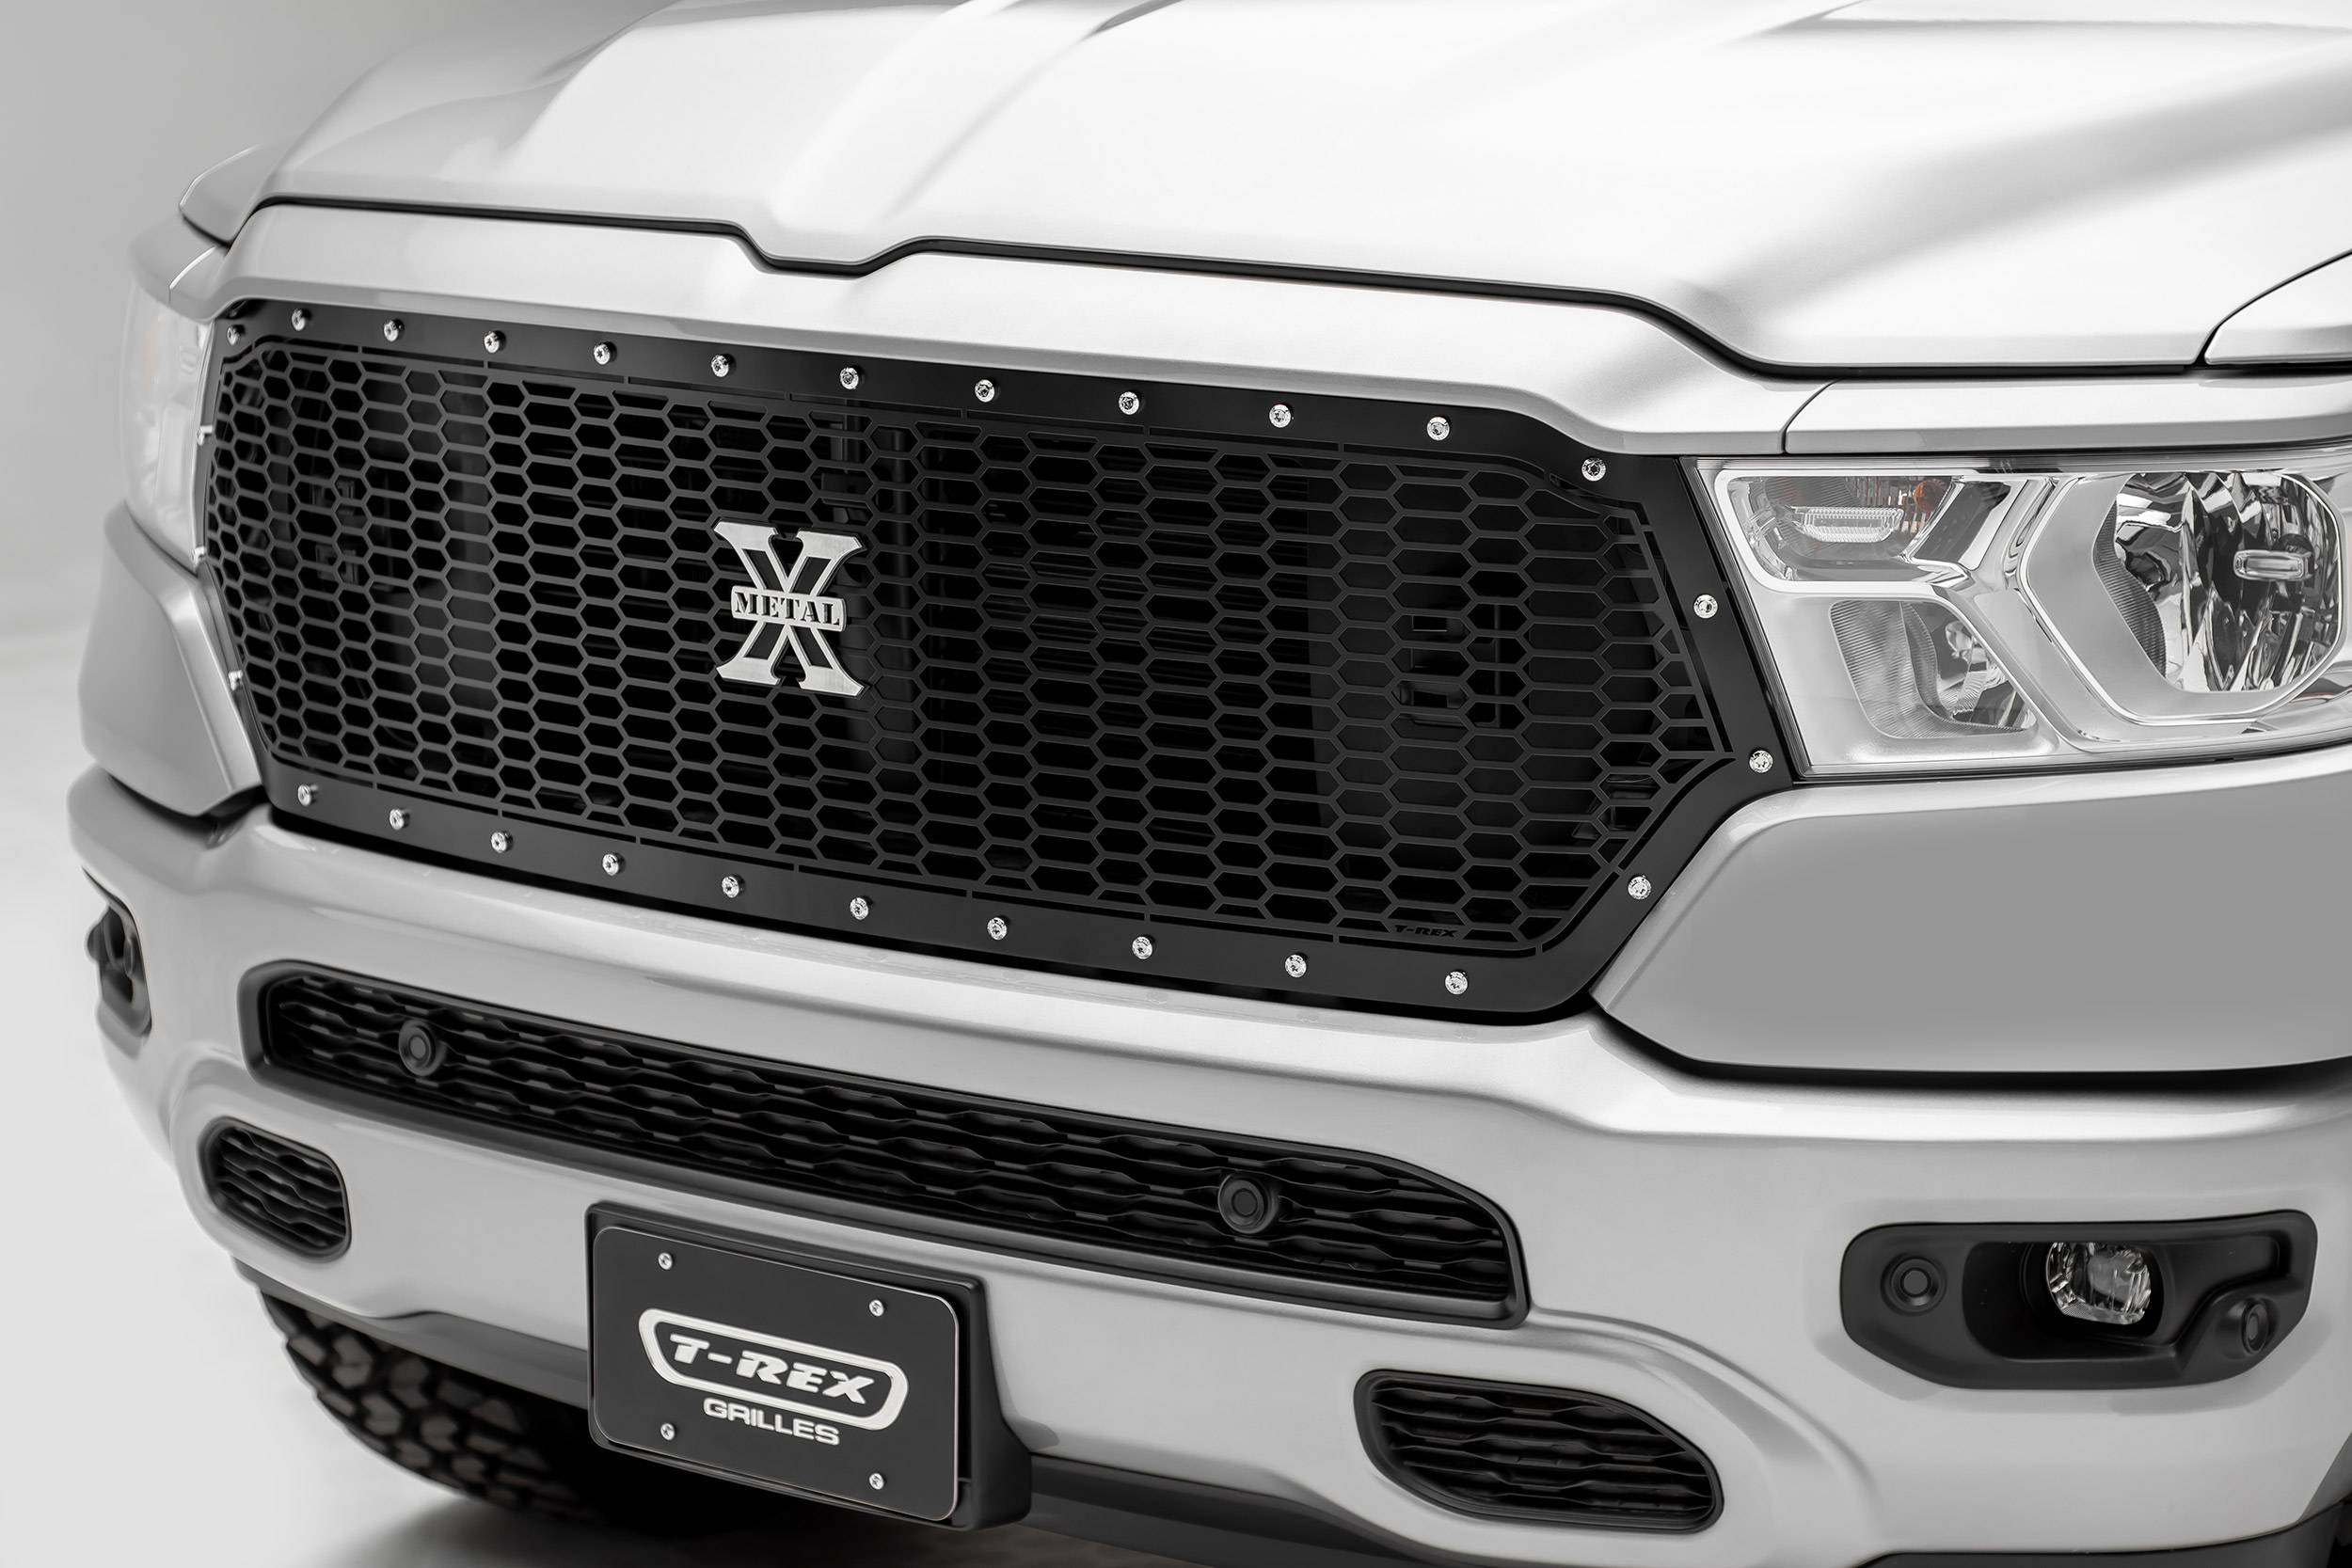 T-REX Grilles - 2019-2020 Ram 1500 Laramie, Lone Star, Big Horn, Tradesman Laser X Grille, Black, 1 Pc, Replacement, Chrome Studs - PN #7714651